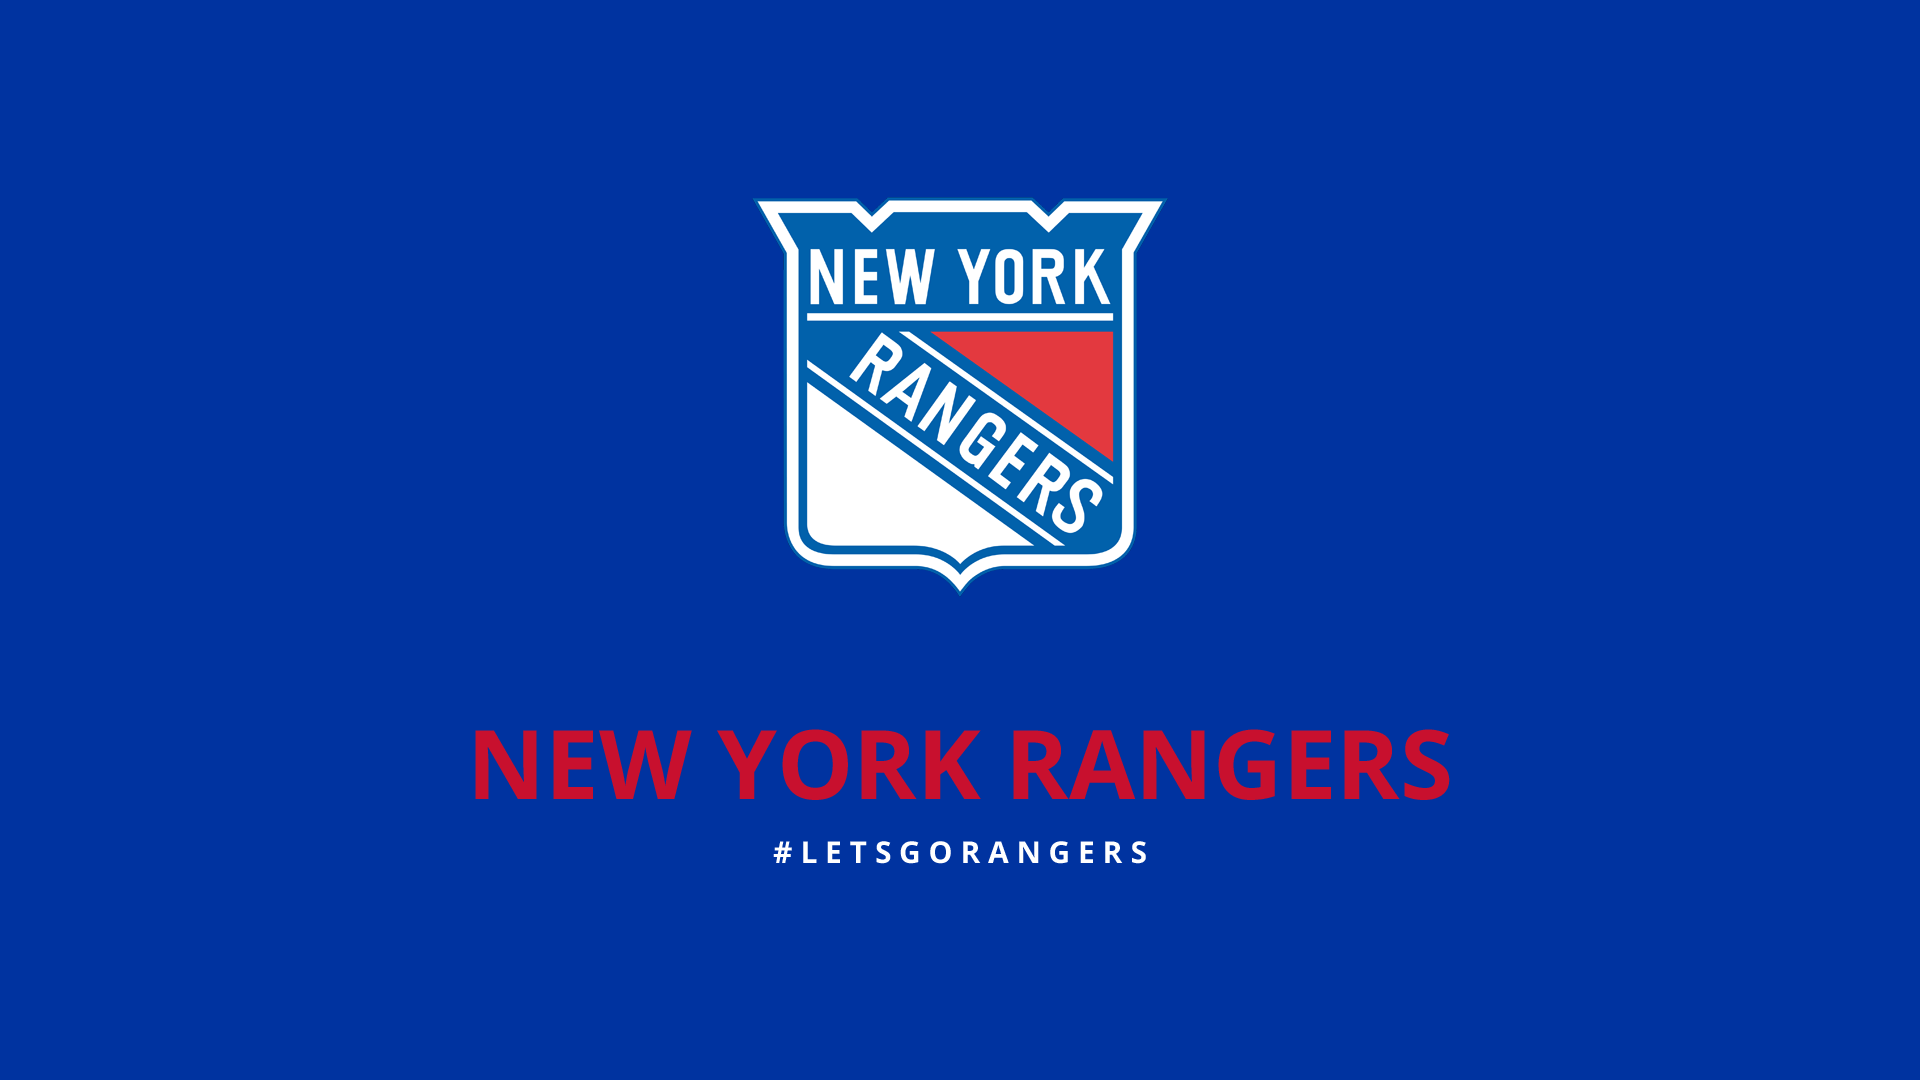 Free Download Minimalist New York Rangers Wallpaper By Lfiore